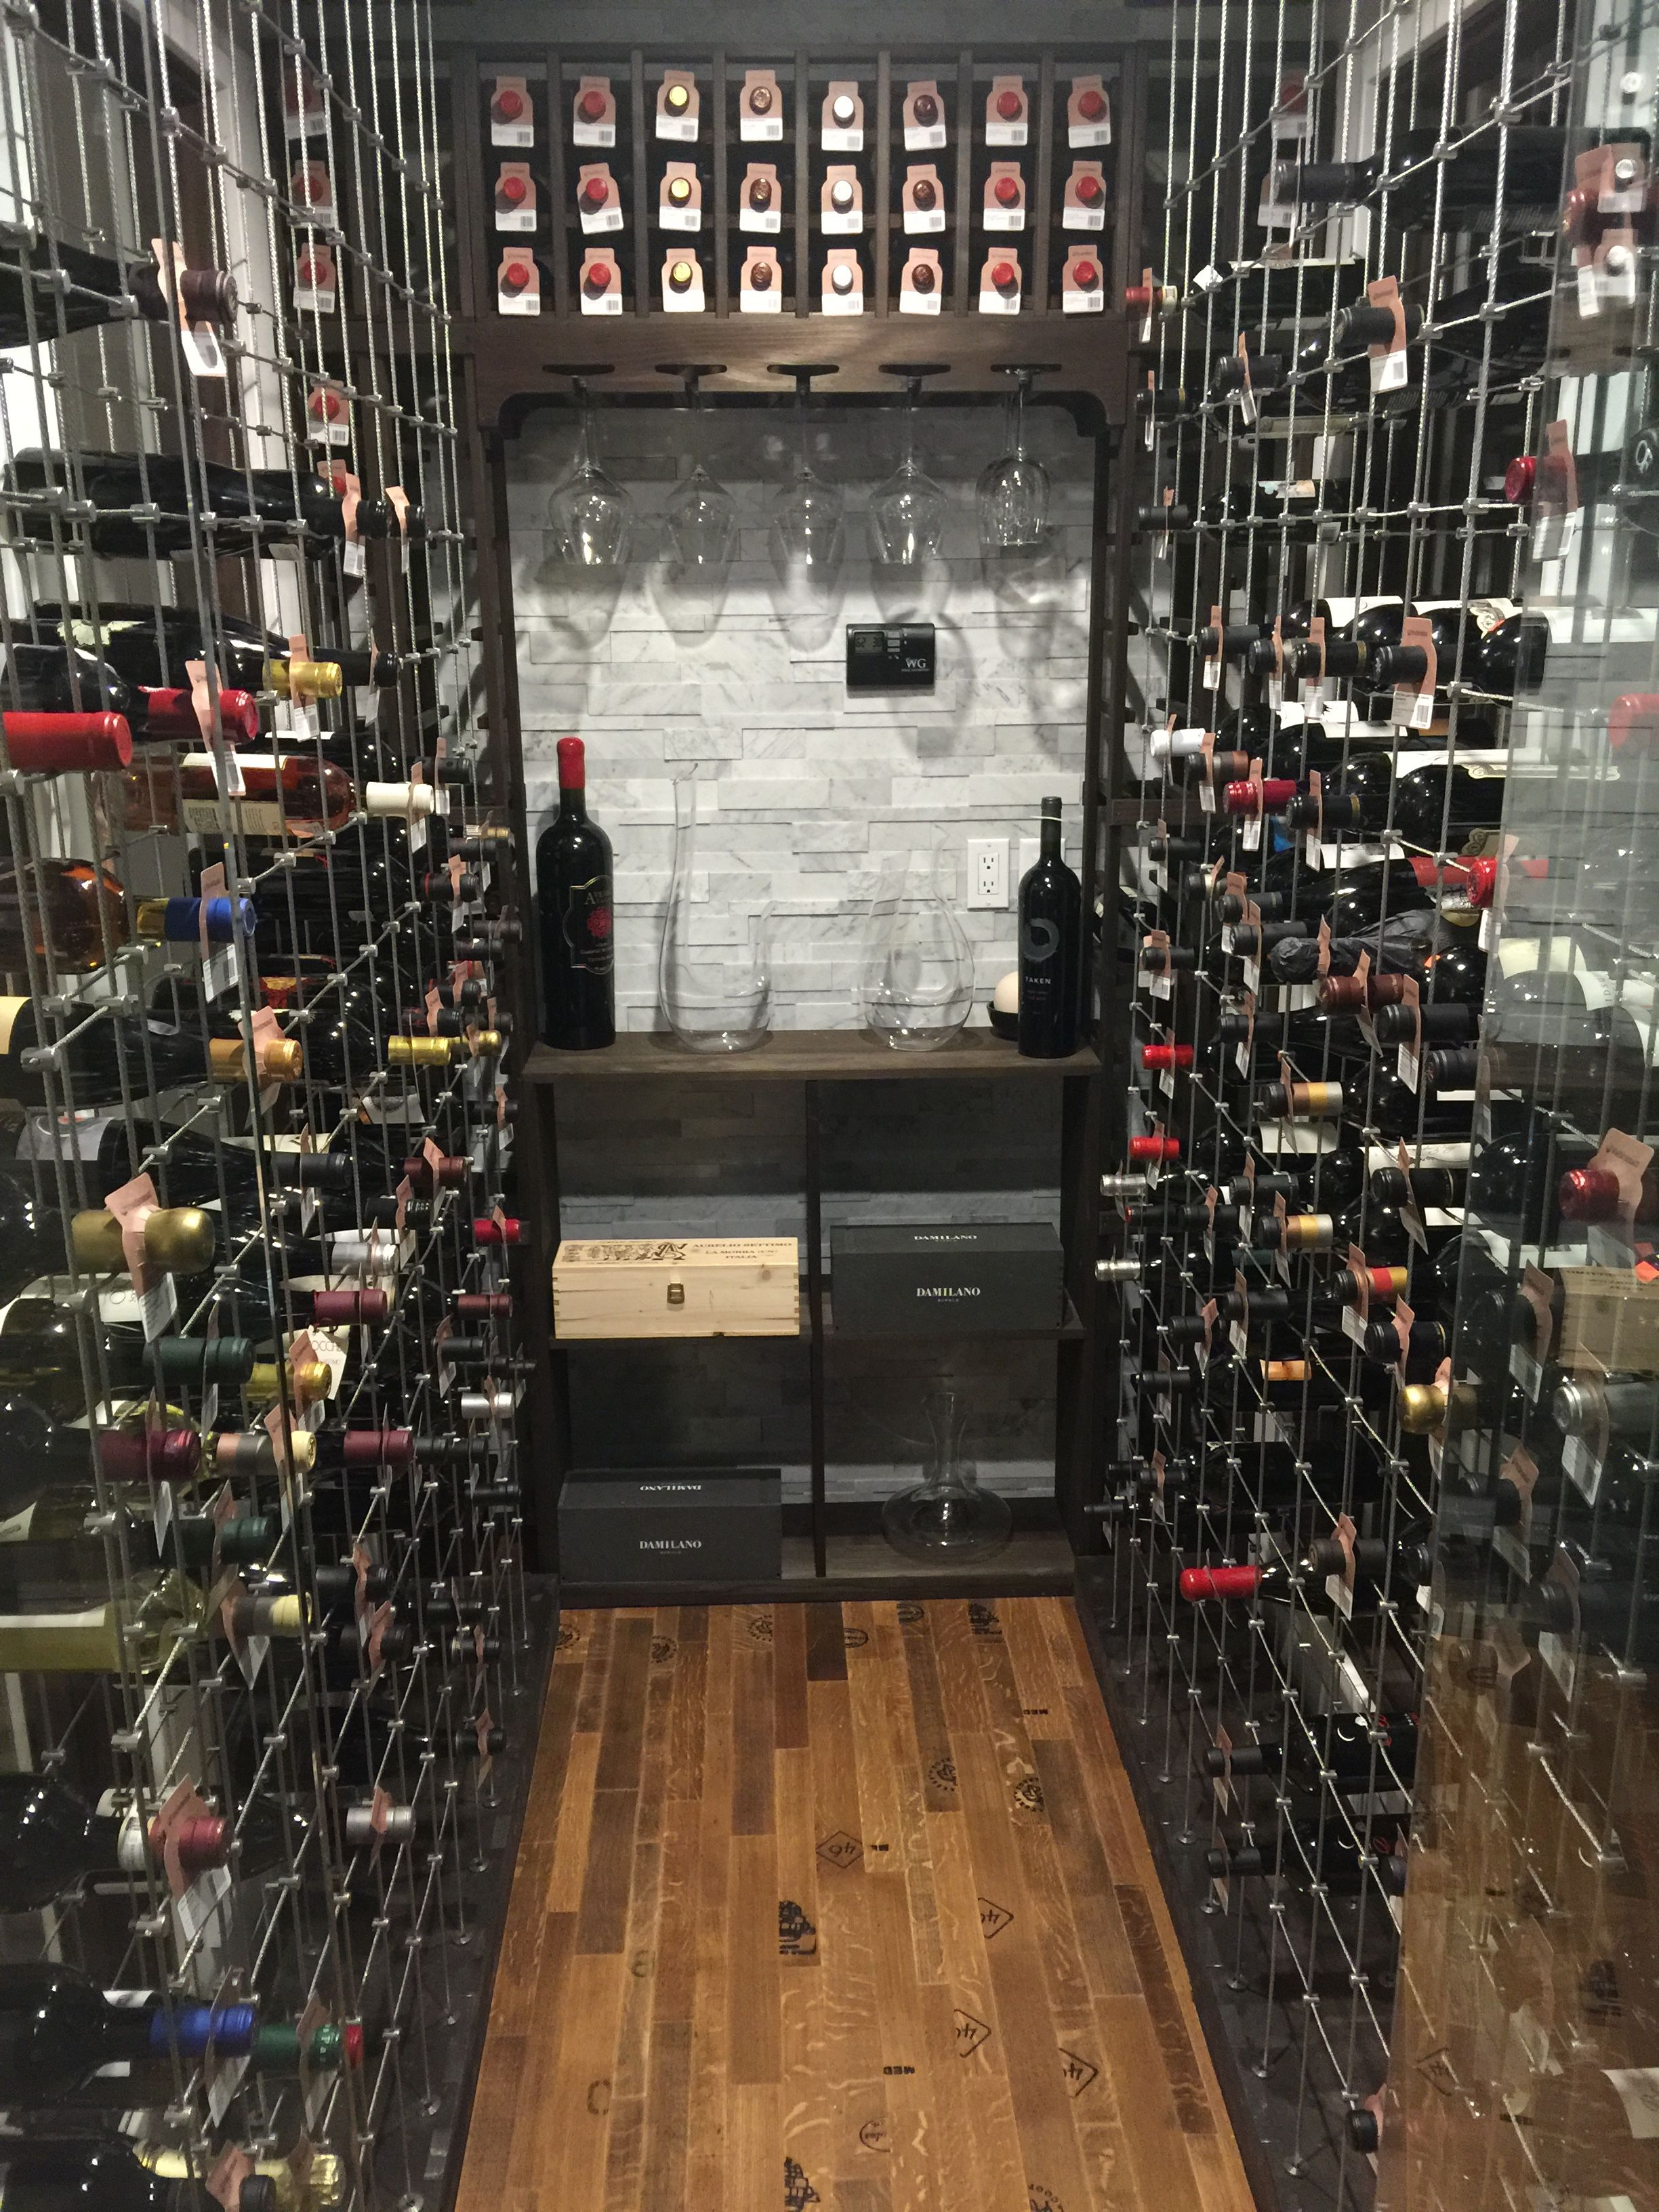 Wine Cellar Room With Glass Doors Wine Cellar With Cable Wine Racks Barrel Wood Floors And Carrara Stone Wall Wine Cellar Glass Door Stone Wall